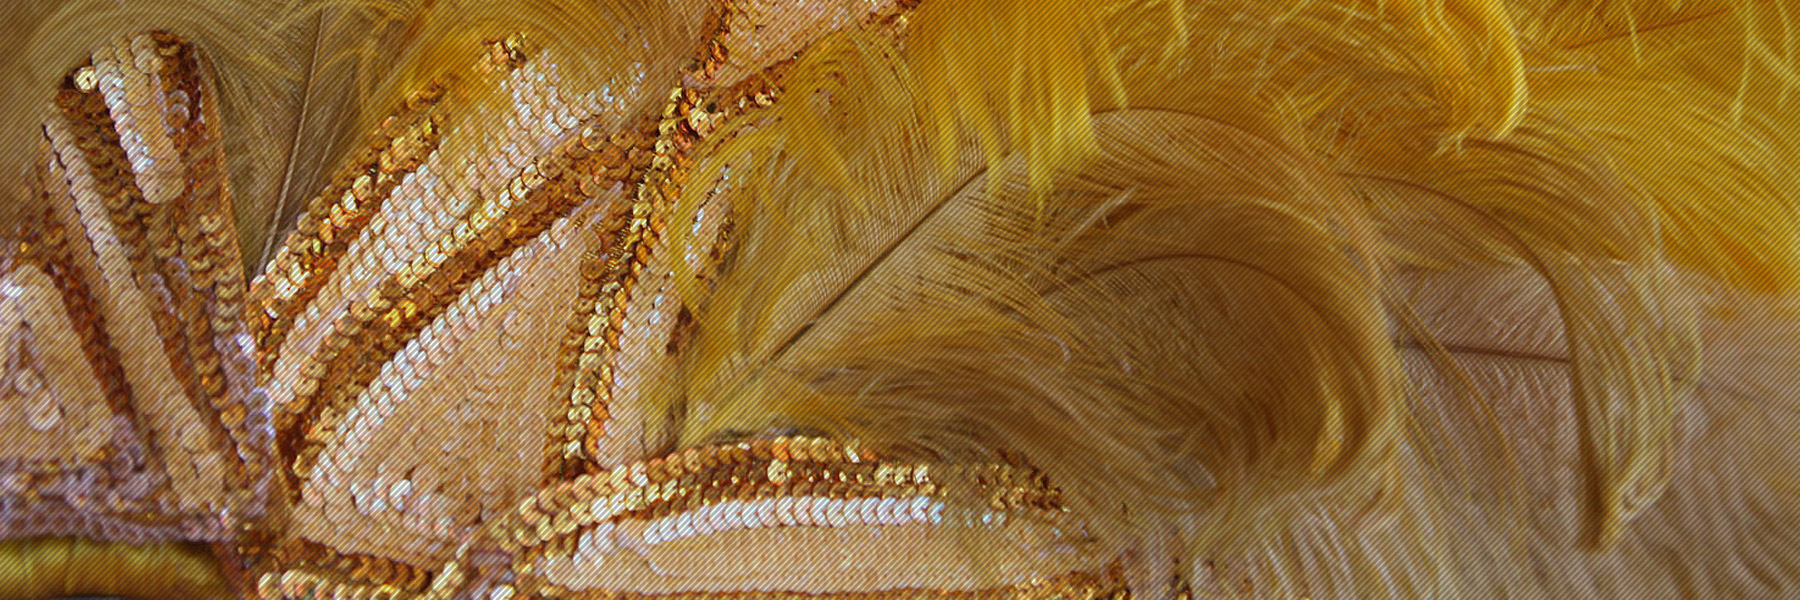 Events Feathers En